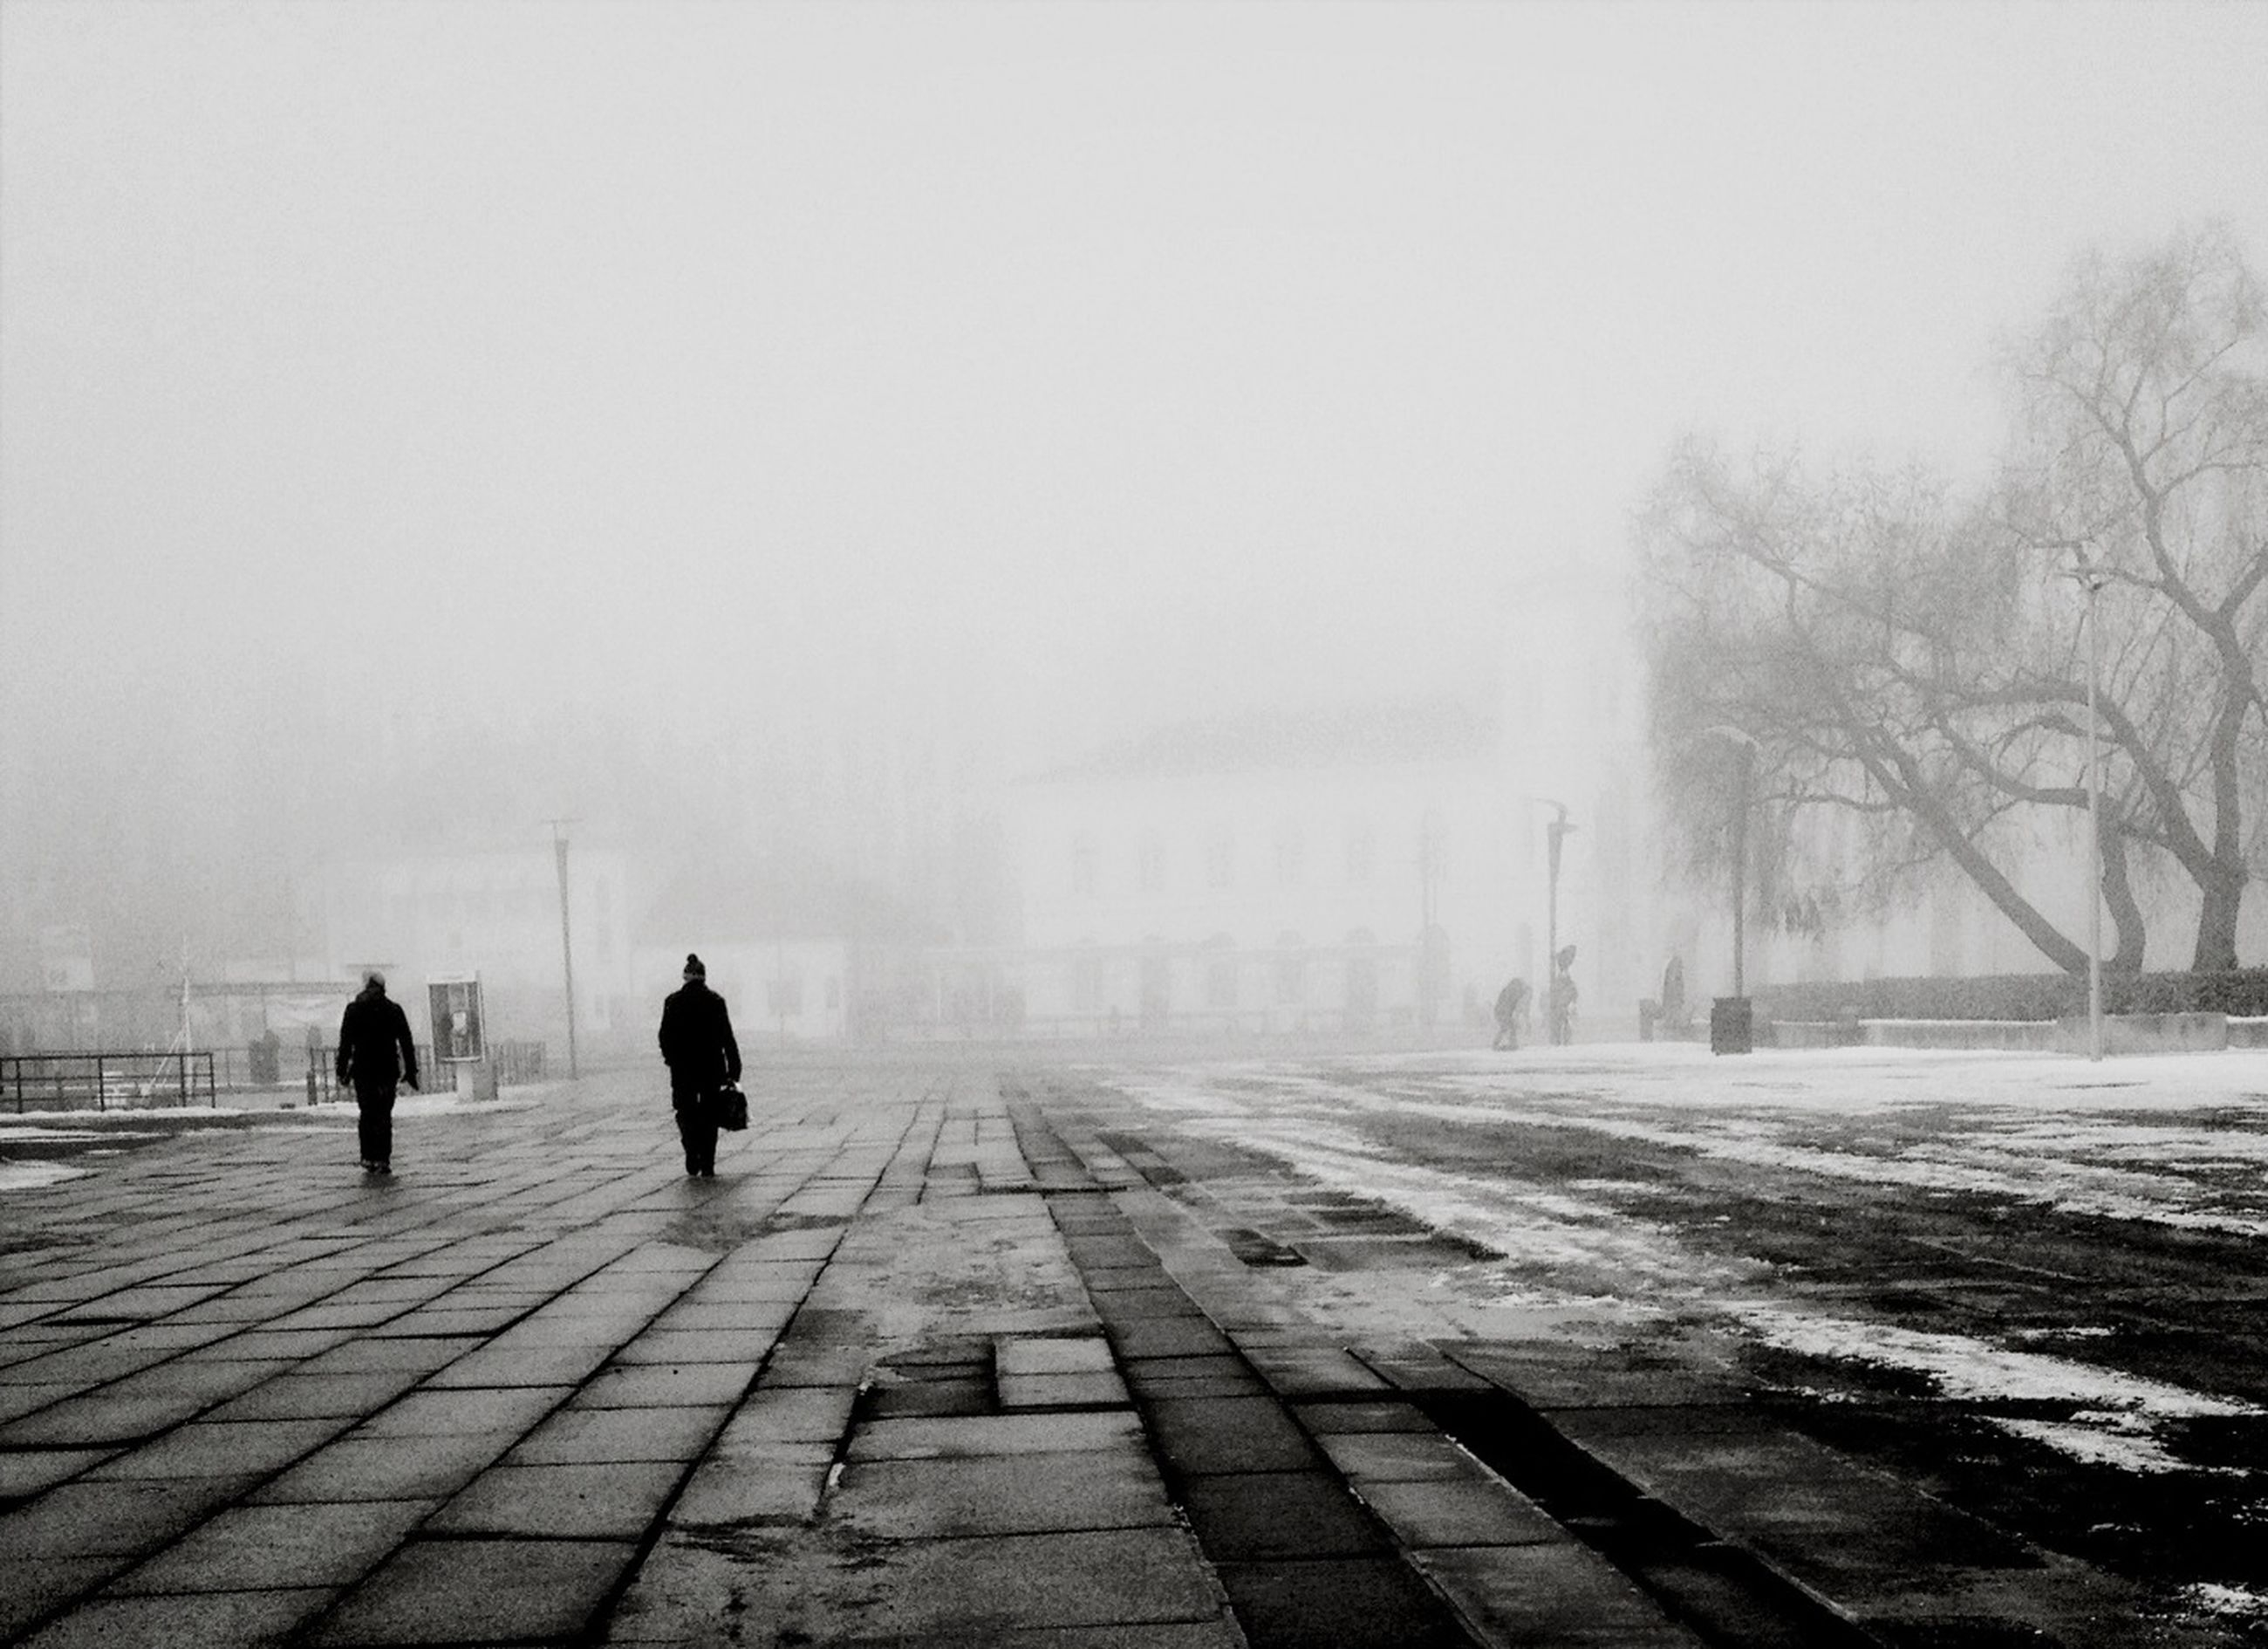 fog, walking, full length, weather, men, rear view, the way forward, foggy, lifestyles, tree, silhouette, person, street, season, leisure activity, transportation, winter